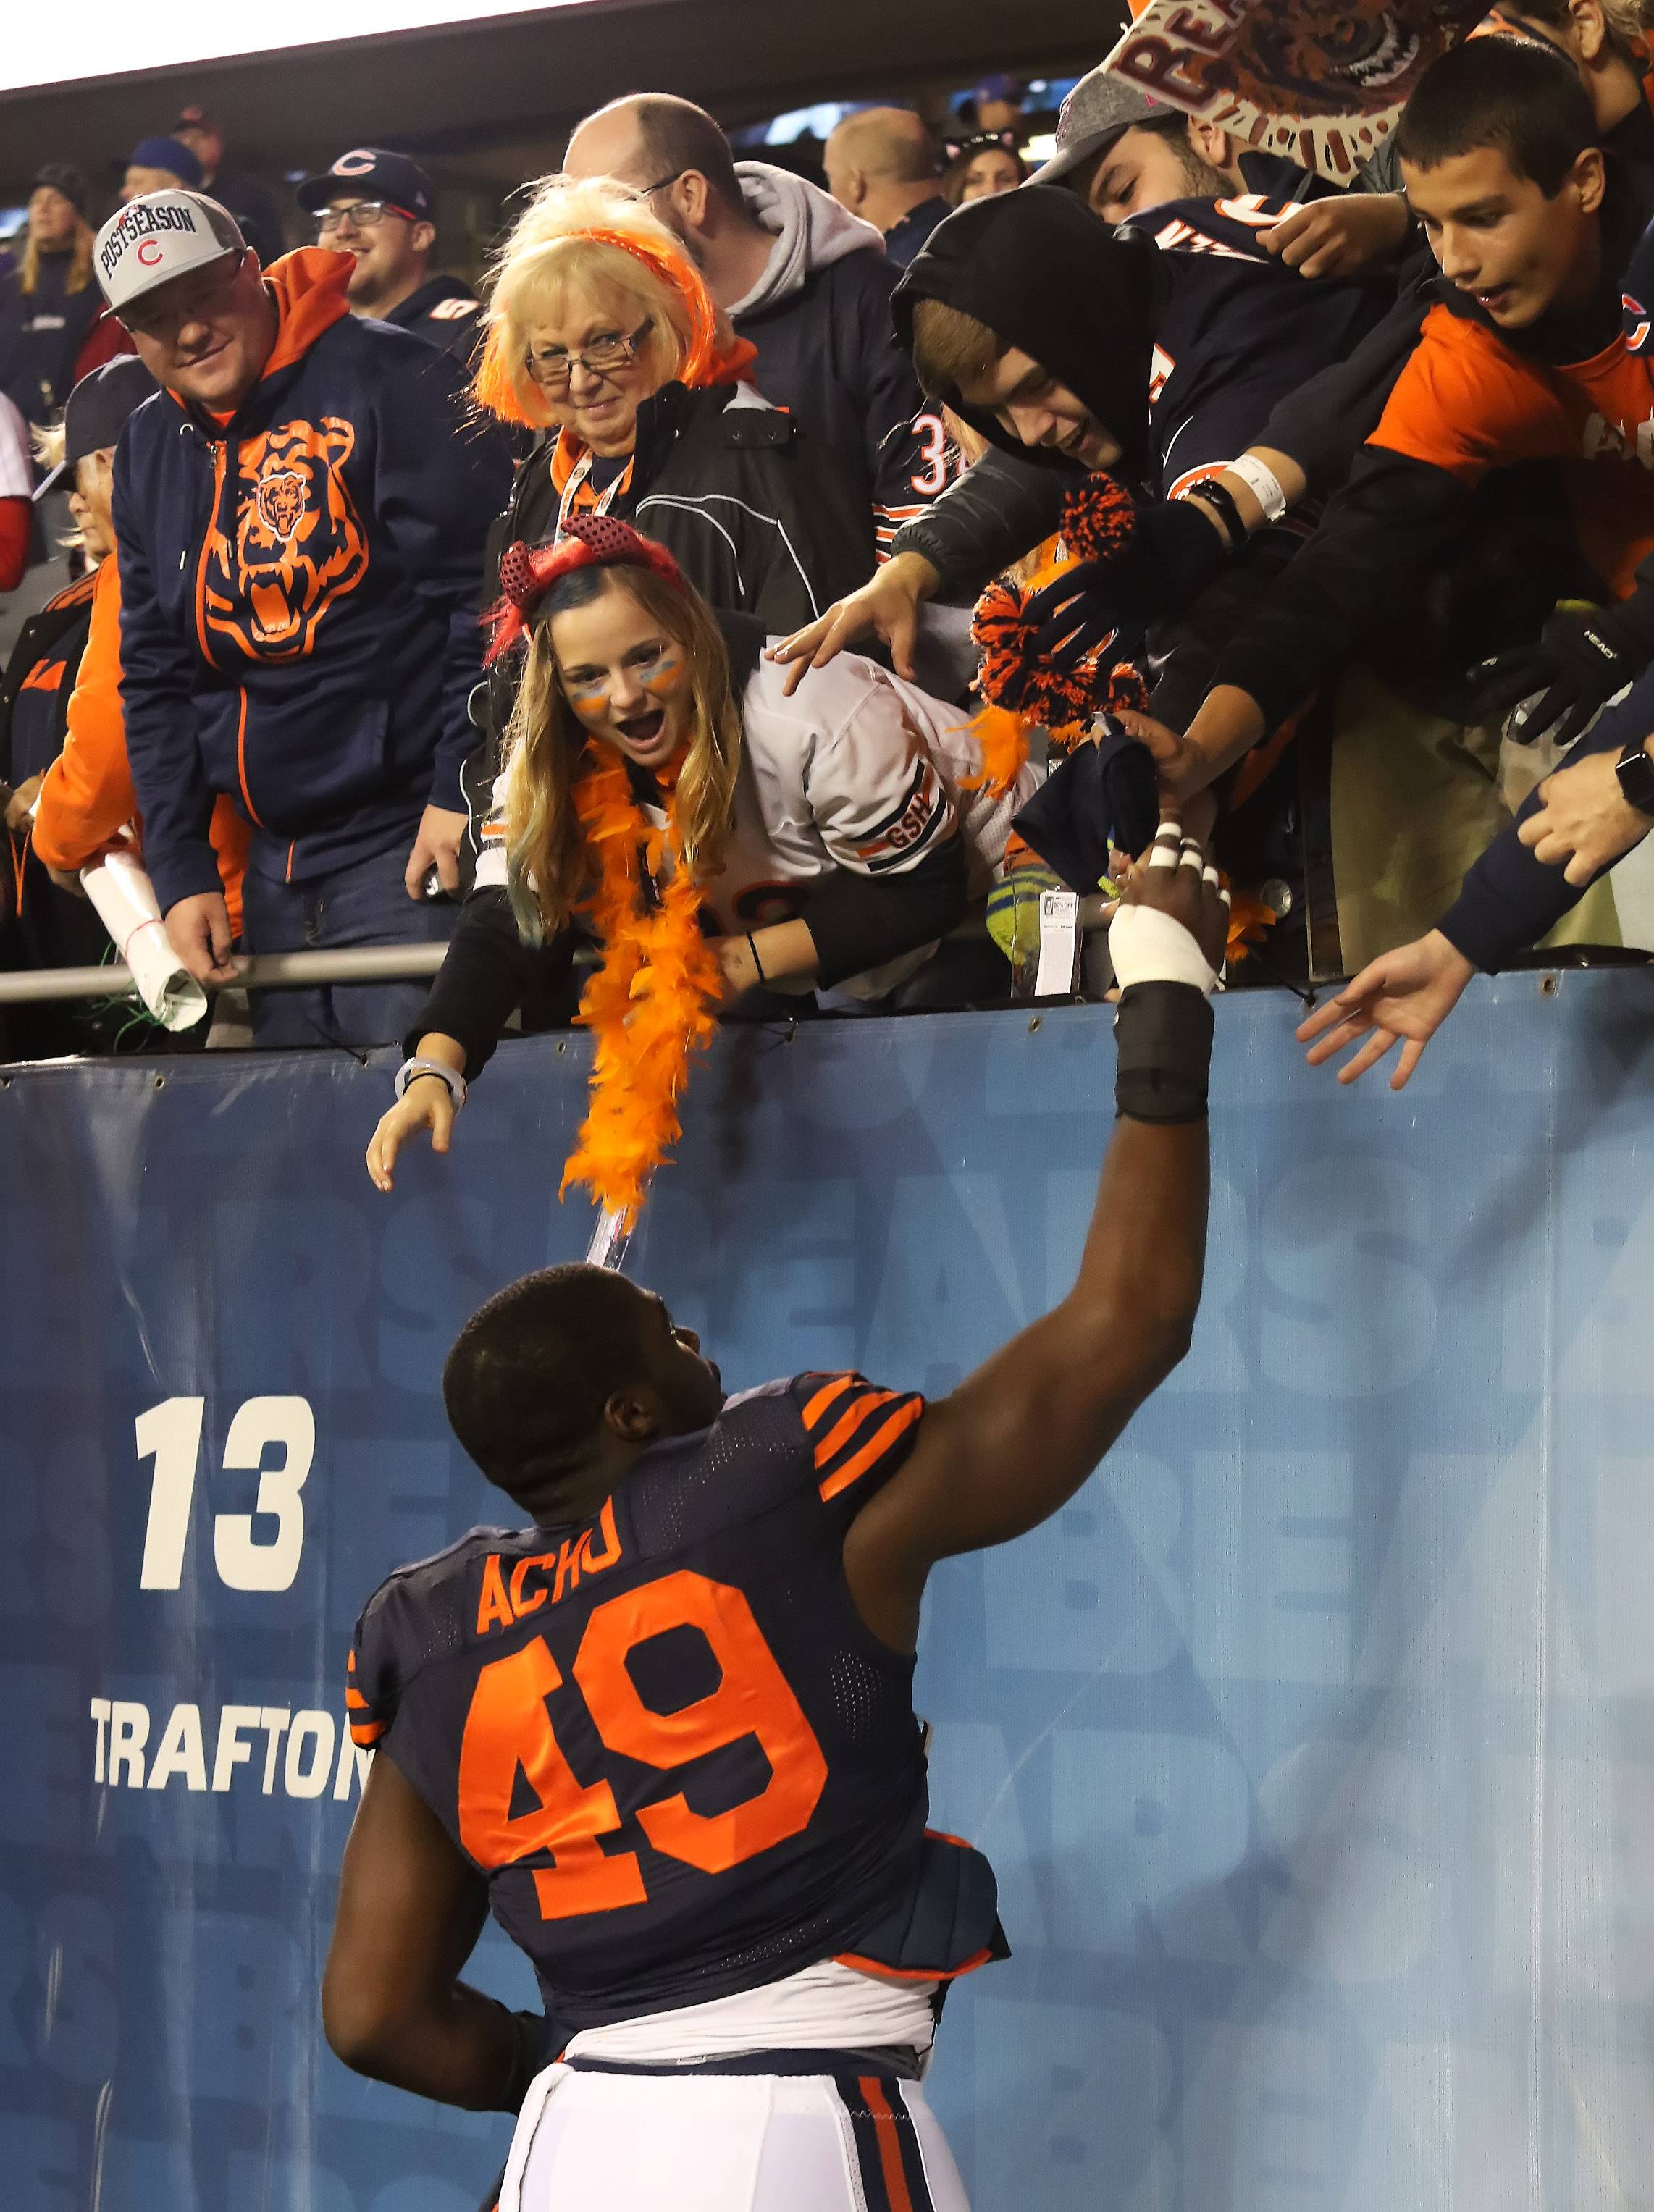 Why giving back is so important to Bears' Acho